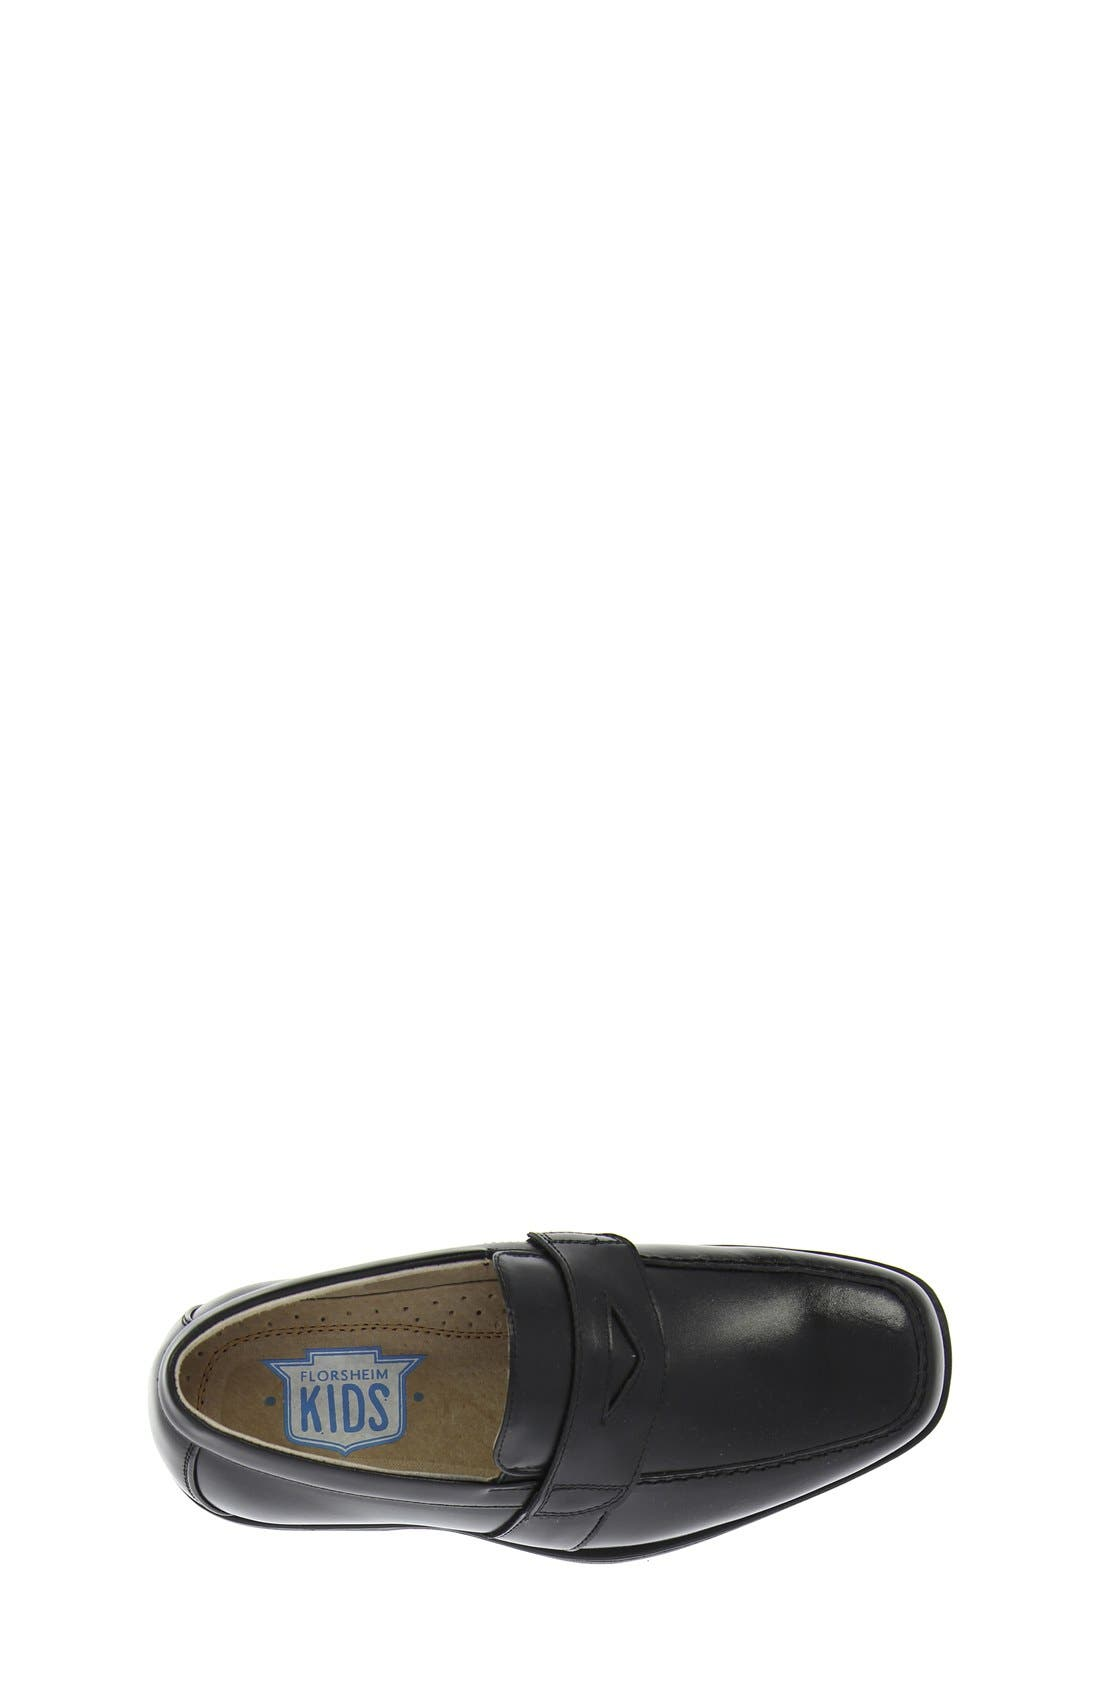 'Reveal' Penny Loafer,                             Alternate thumbnail 10, color,                             BLACK